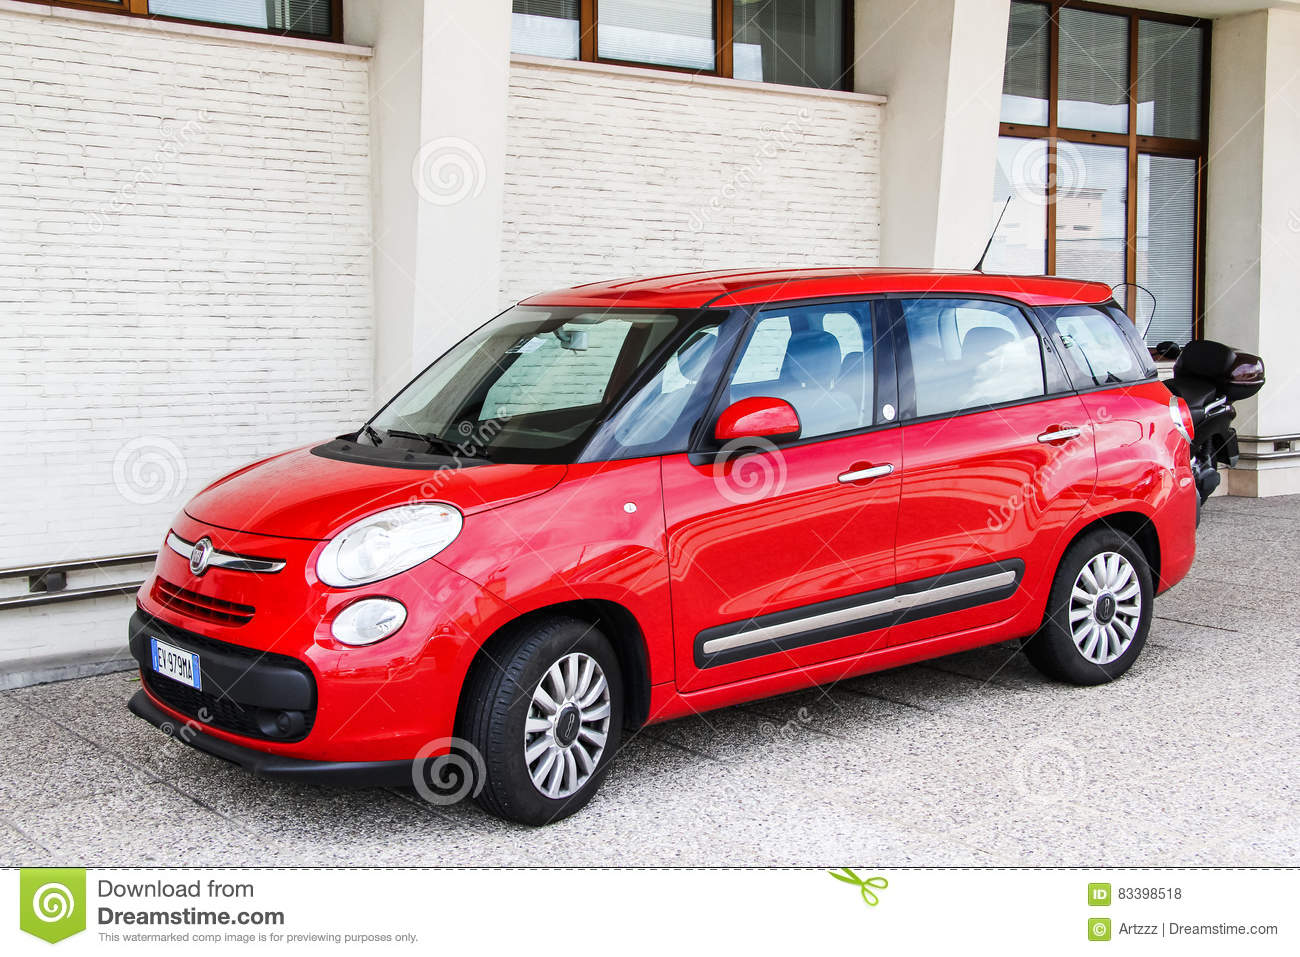 Fiat 500l editorial image 69723594 for Motor city auto sales